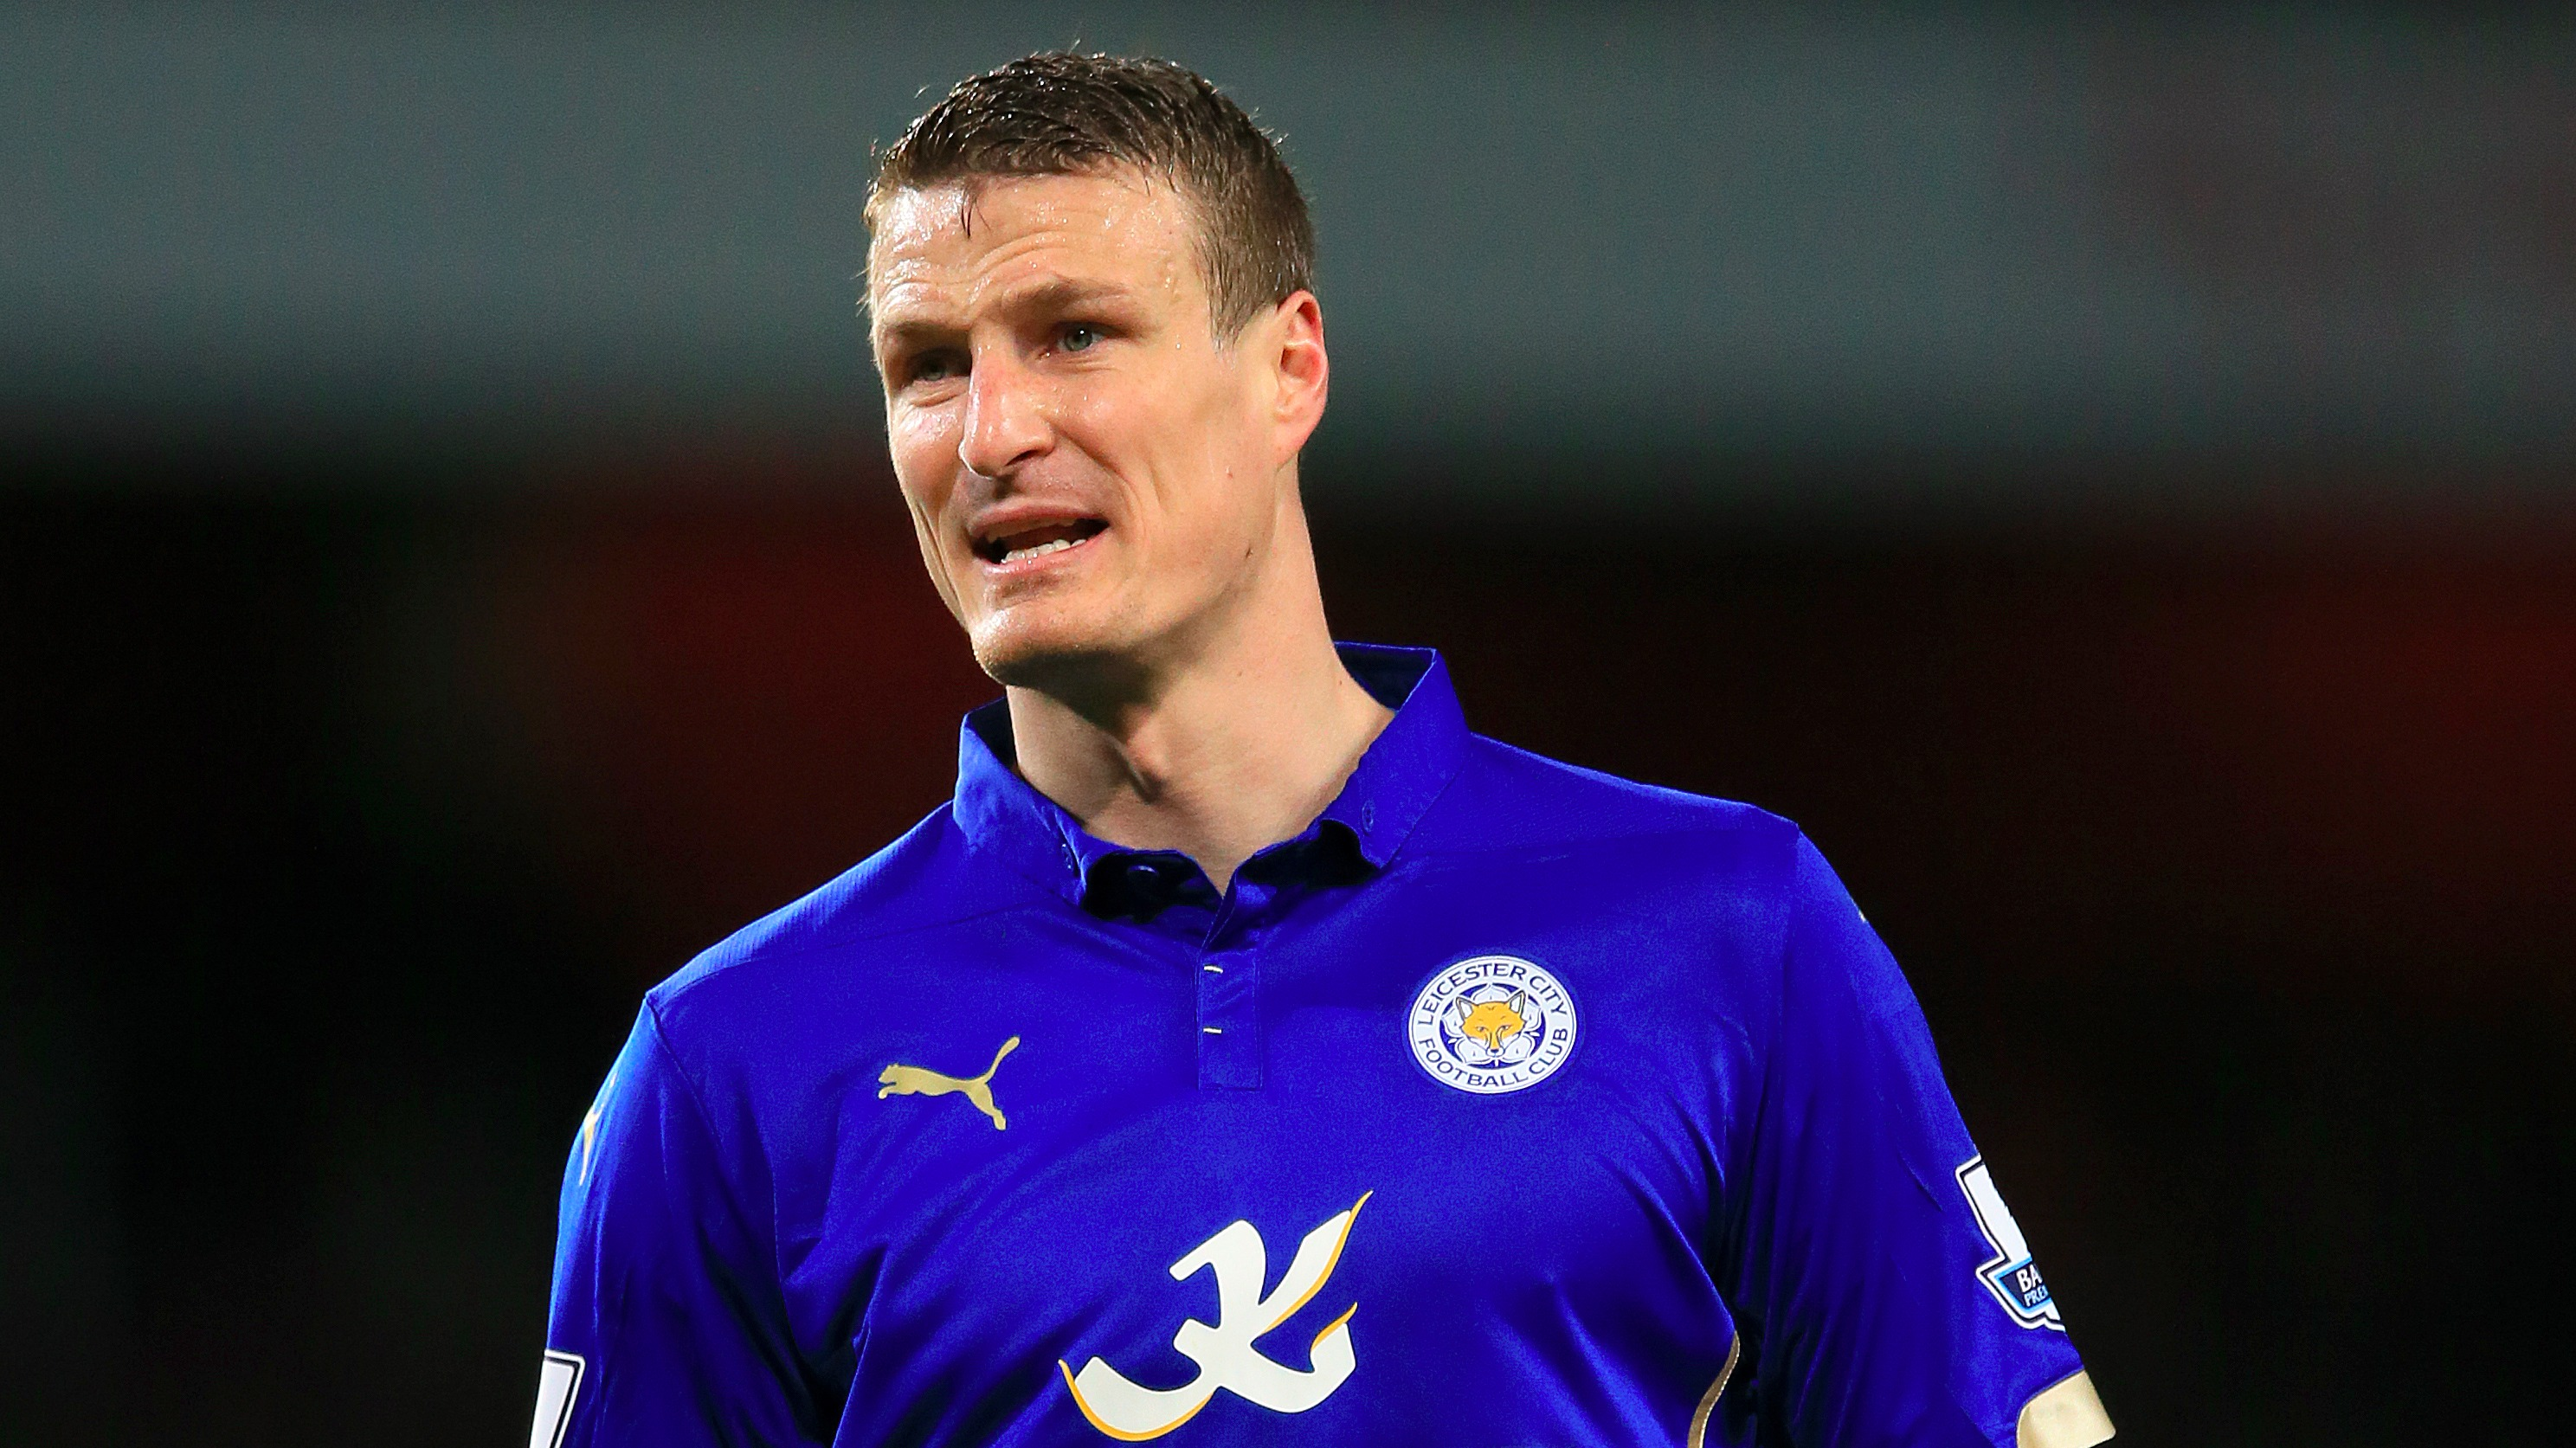 Leicester sign German defender Huth permanently - ITV News